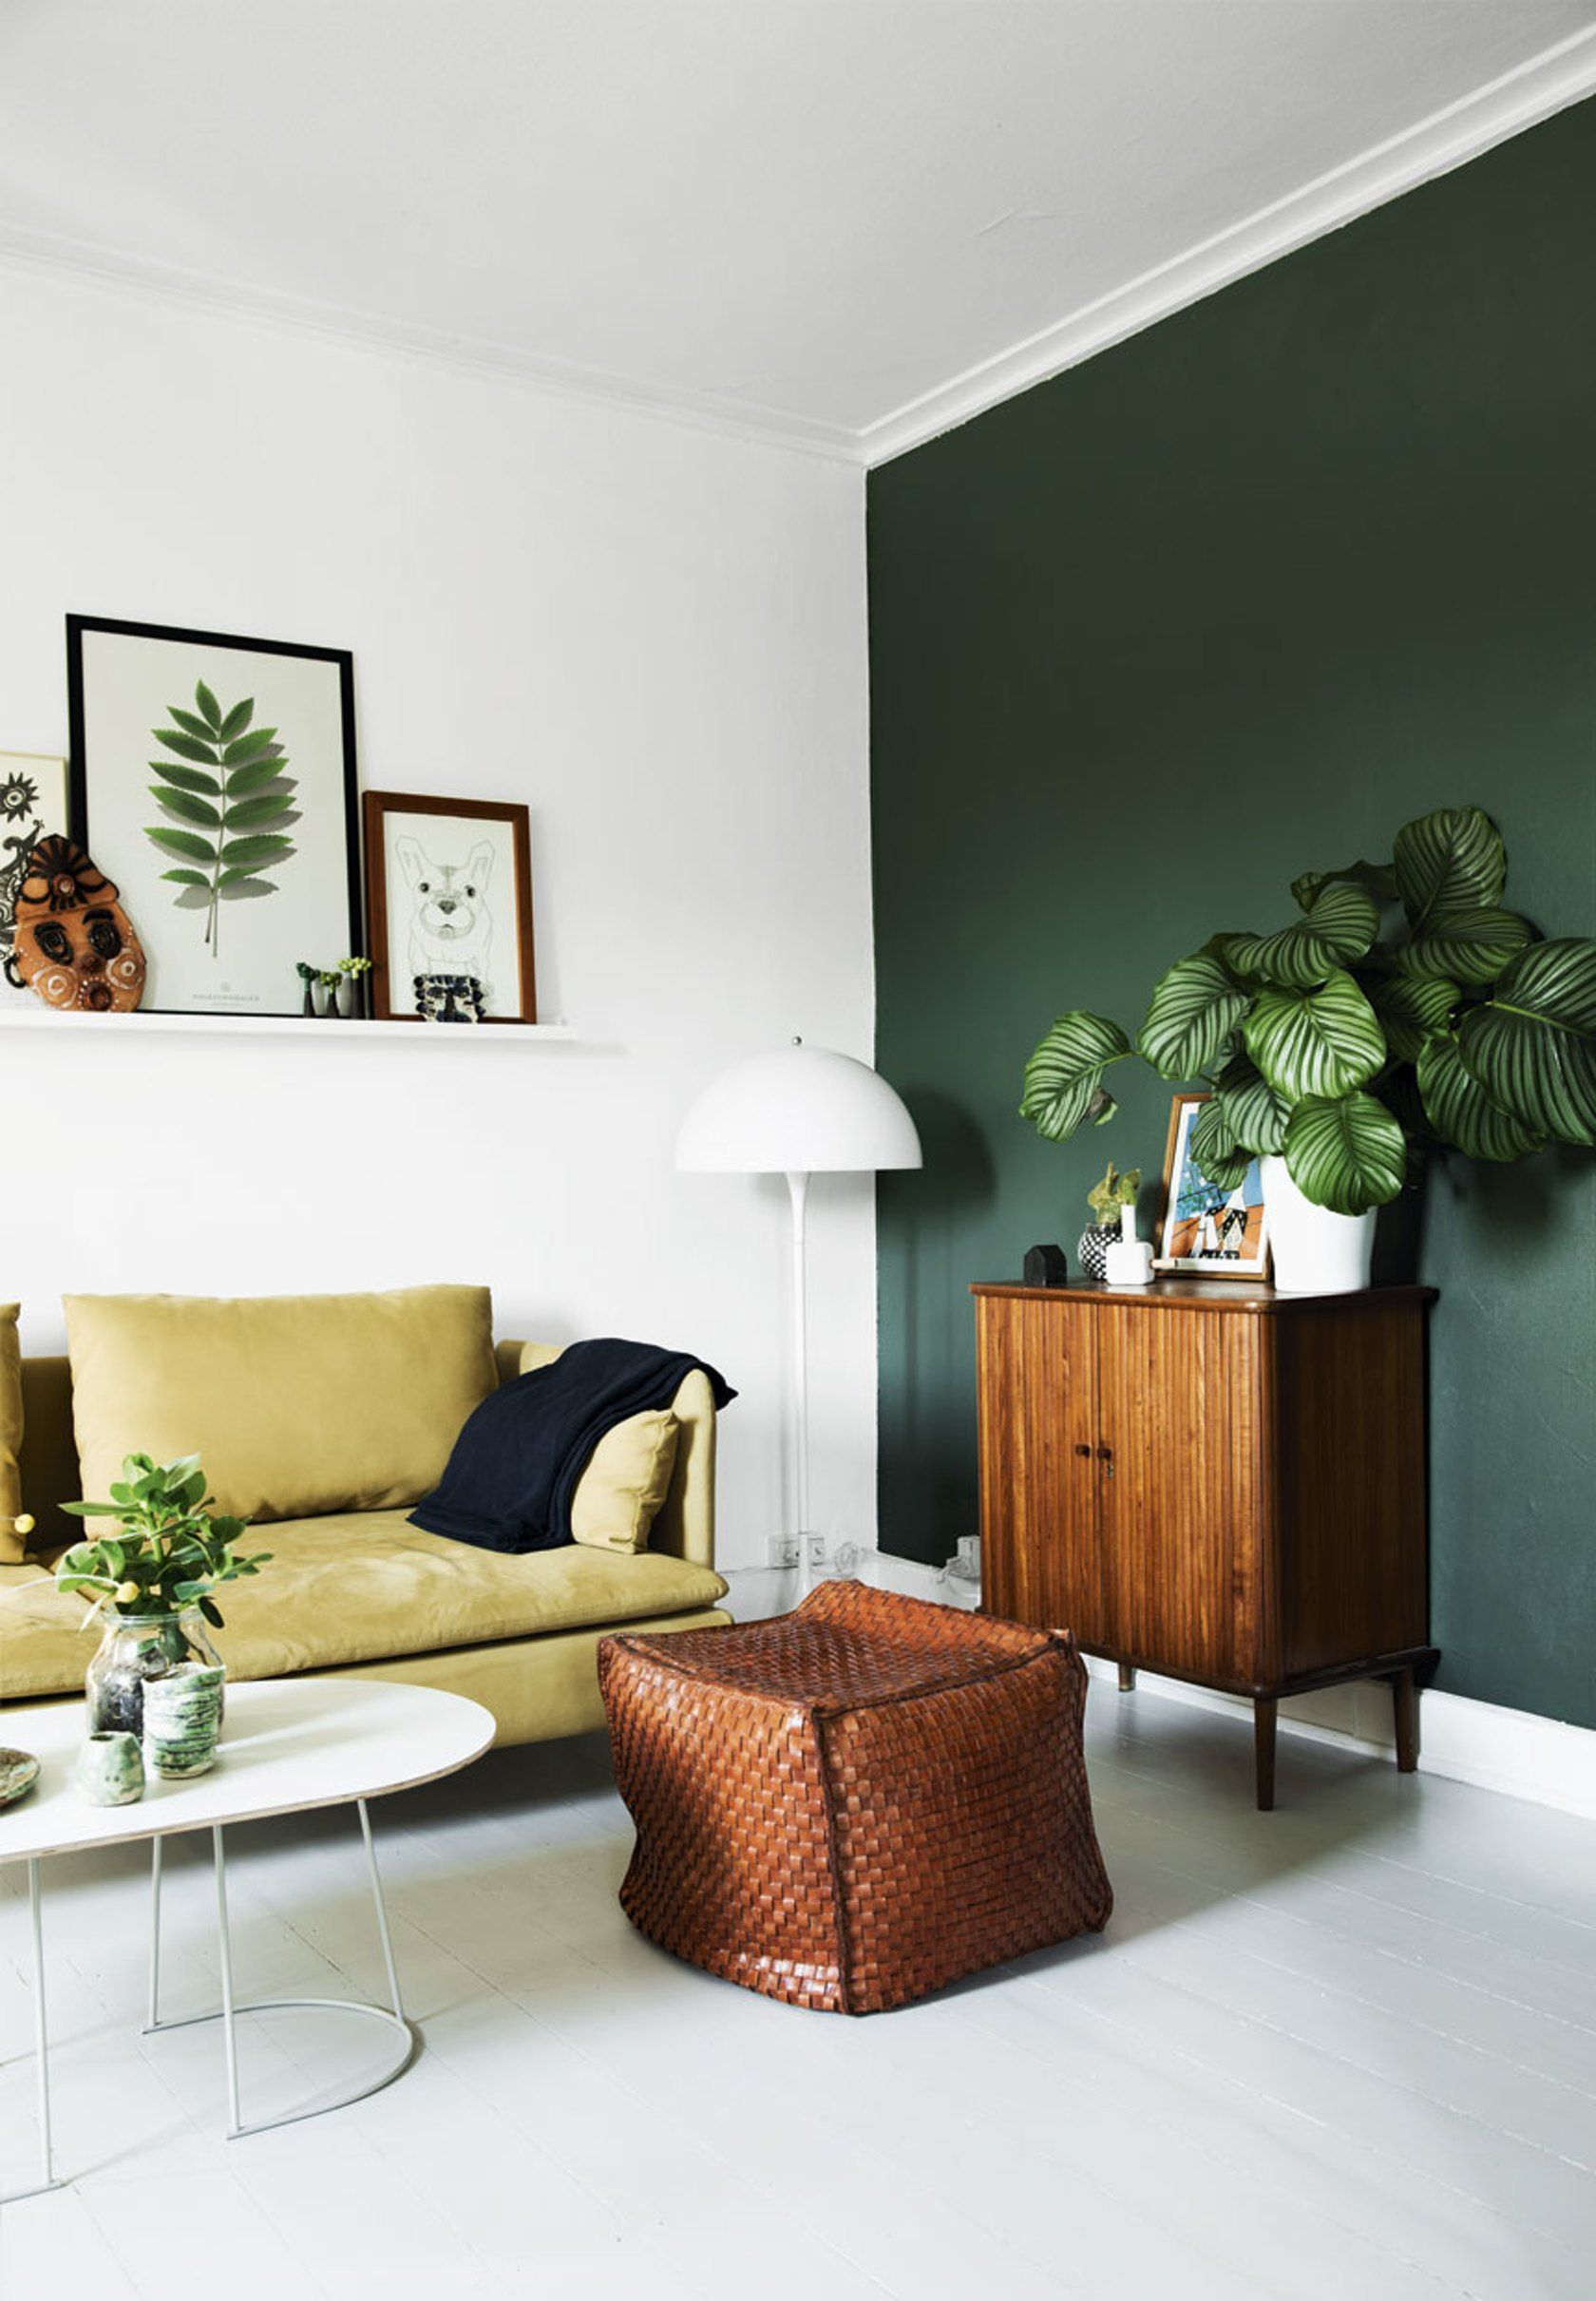 Home decorating diy projects green wall danish modern retro houseplants wire planter mustard yellow also hvid verner panton lampe living room pinterest rooms rh